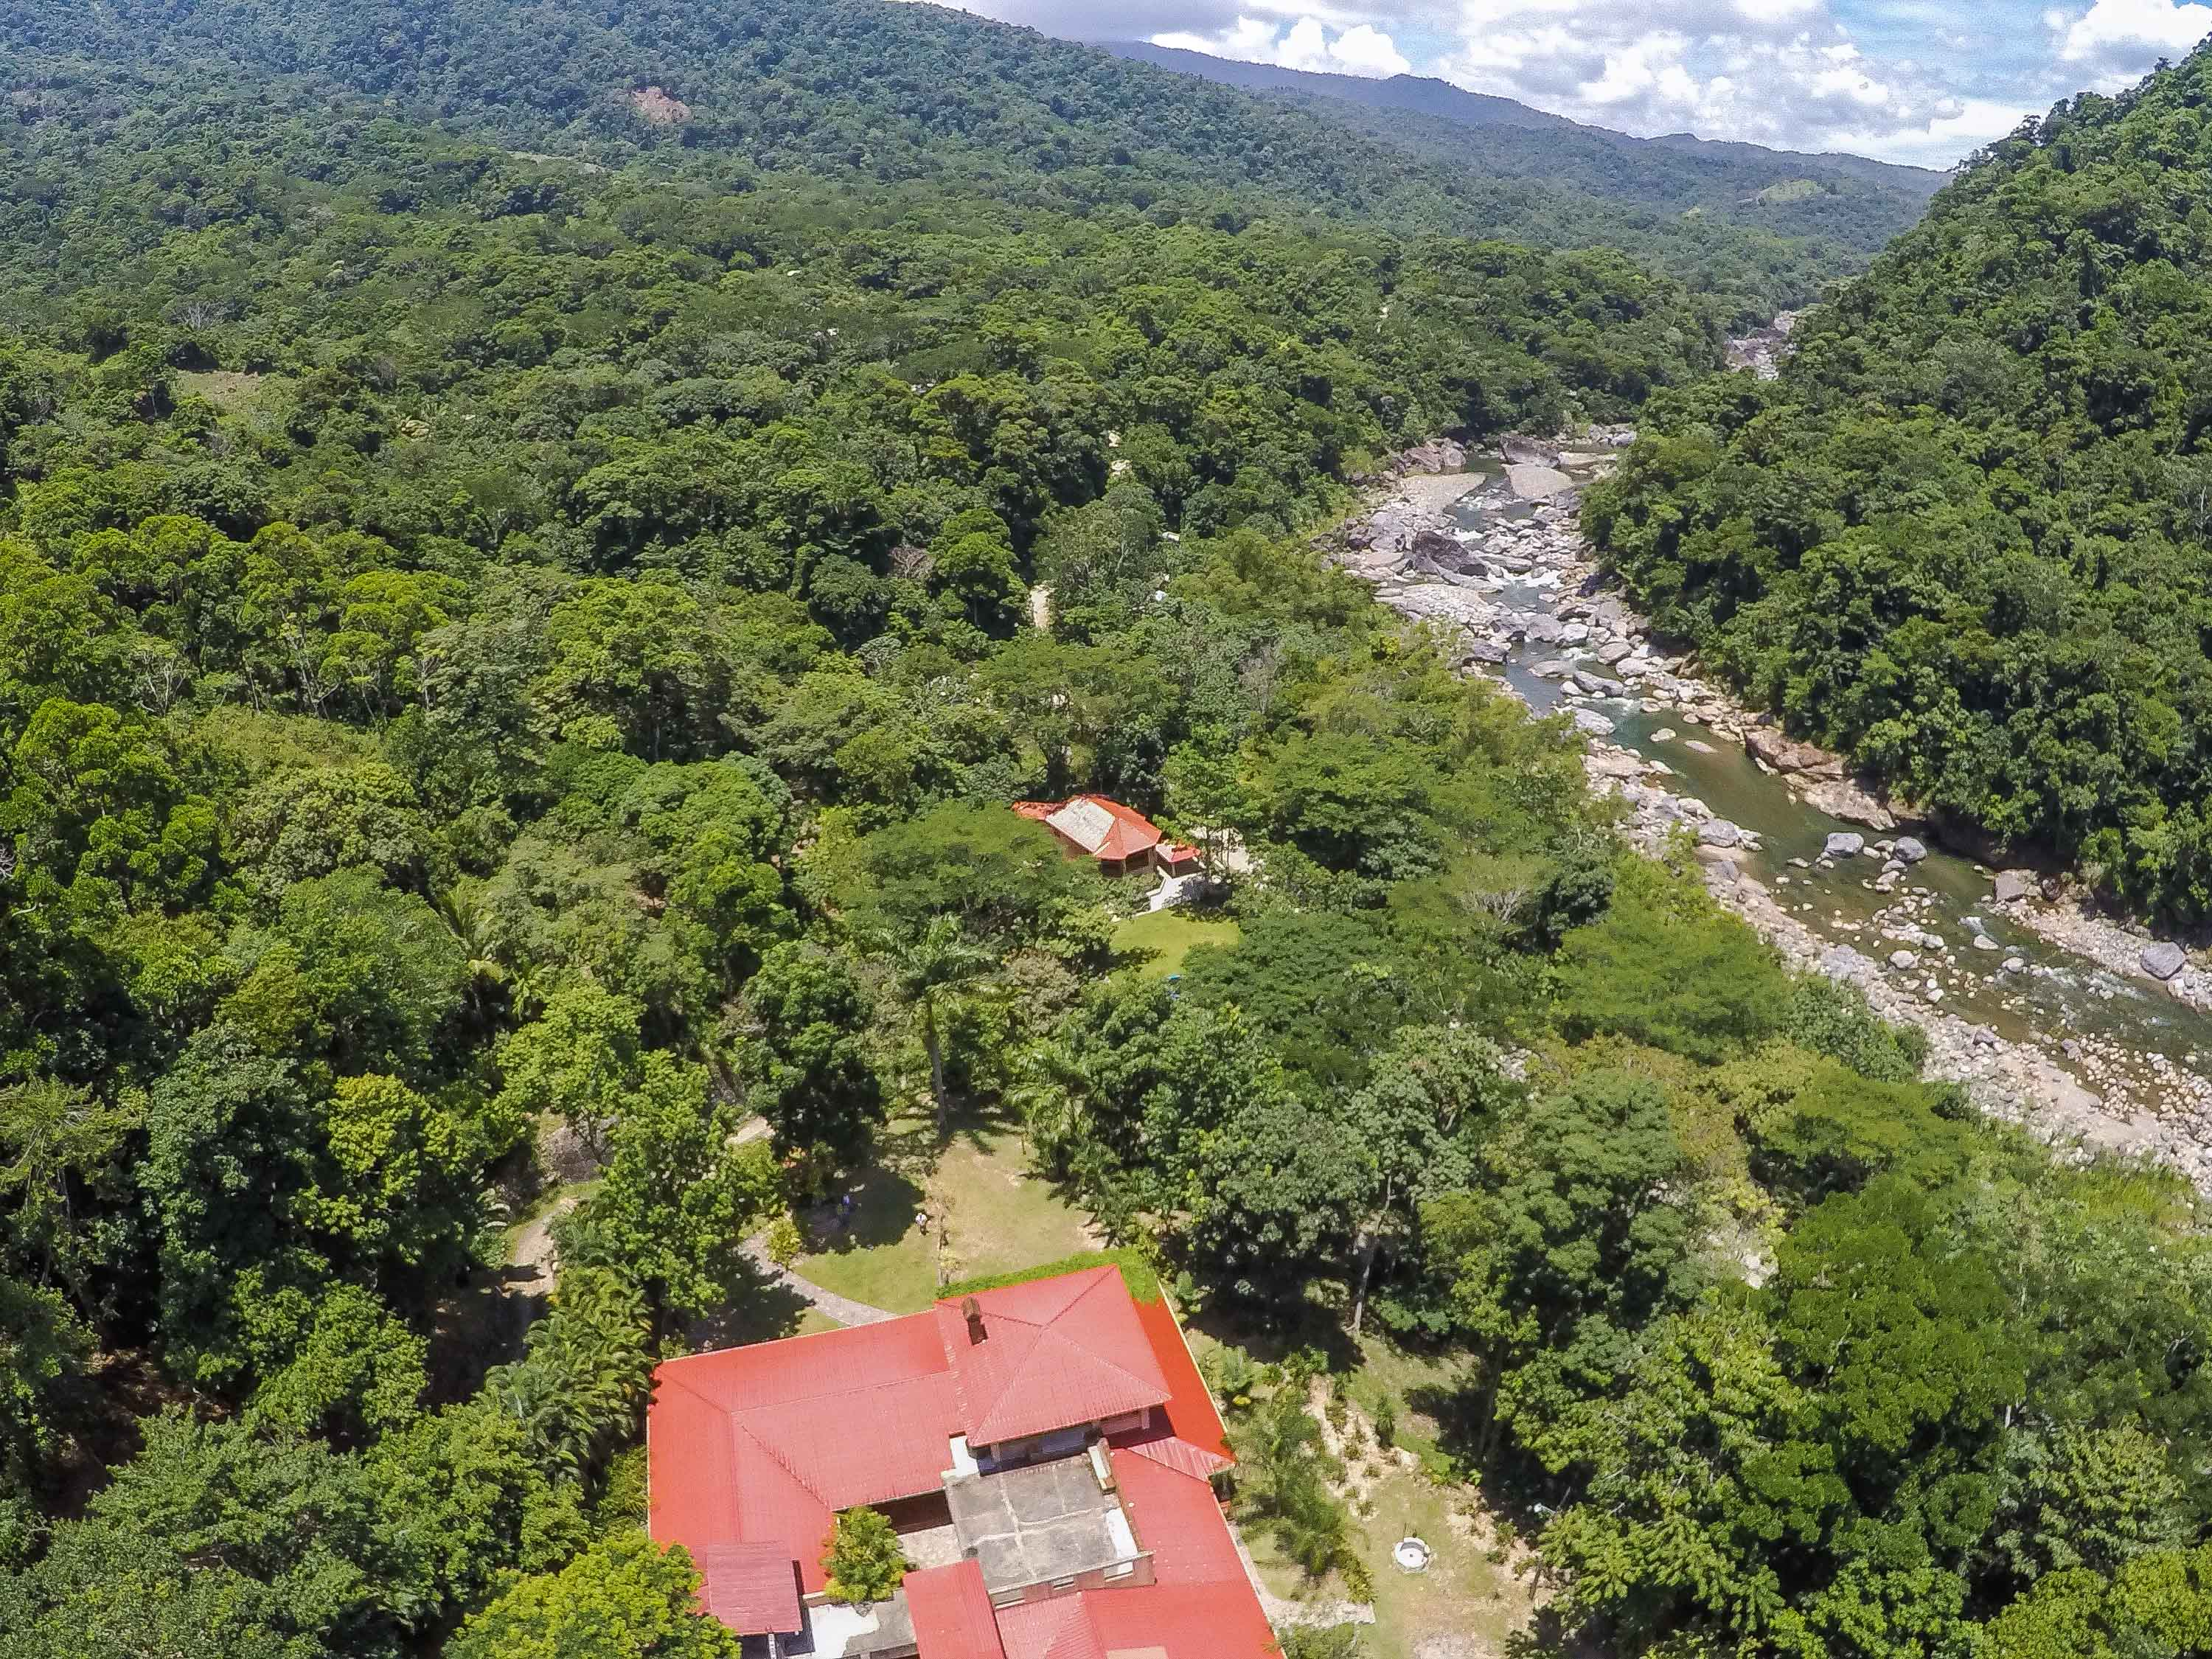 Hotels in Pico Bonito National Park